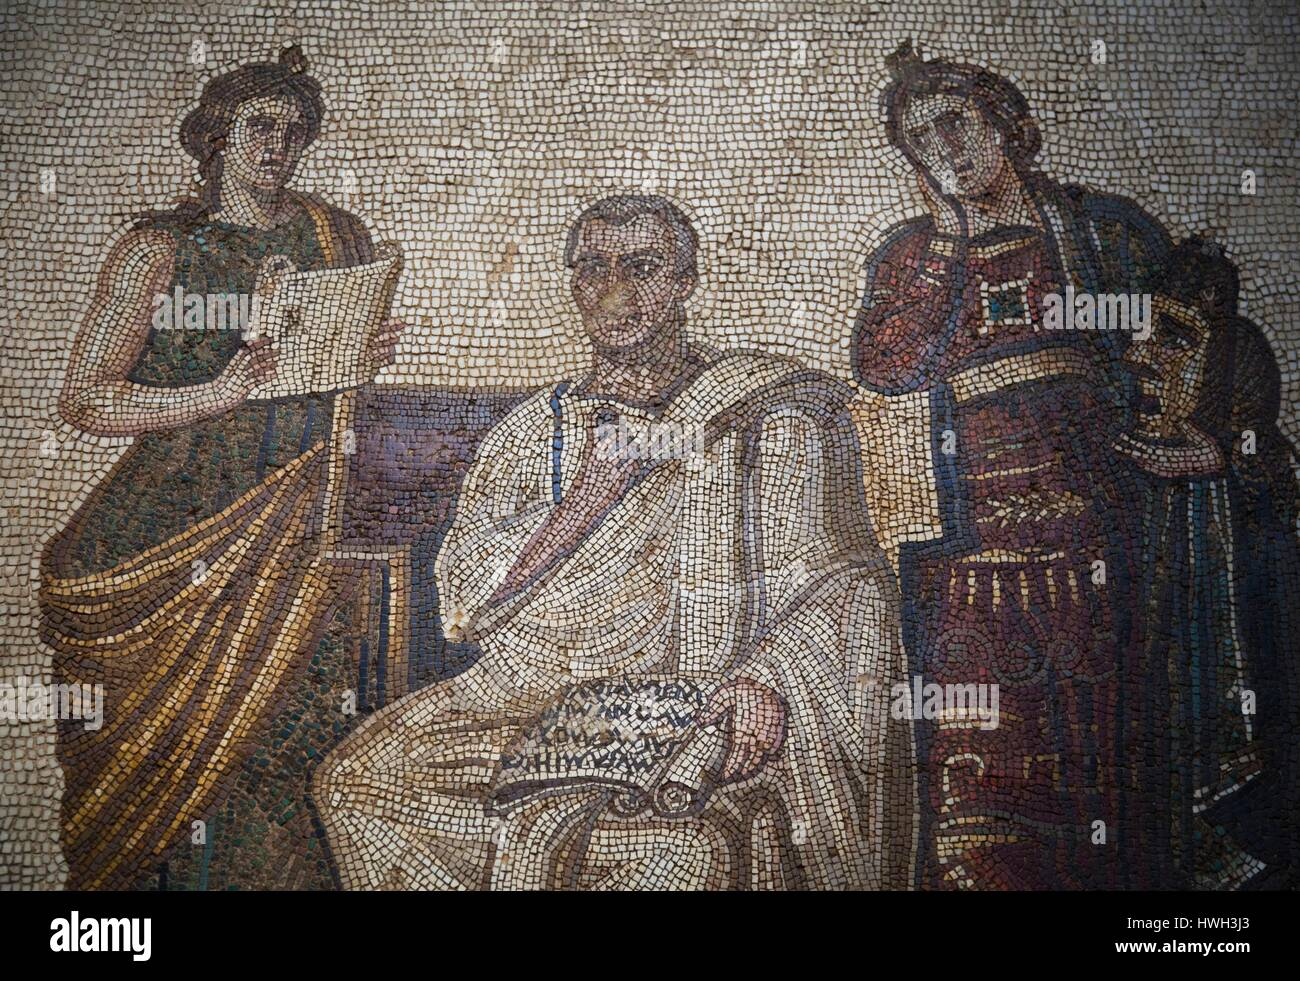 Tunisia, Tunis, Bardo Museum, Roman-era mosaics Stock Photo